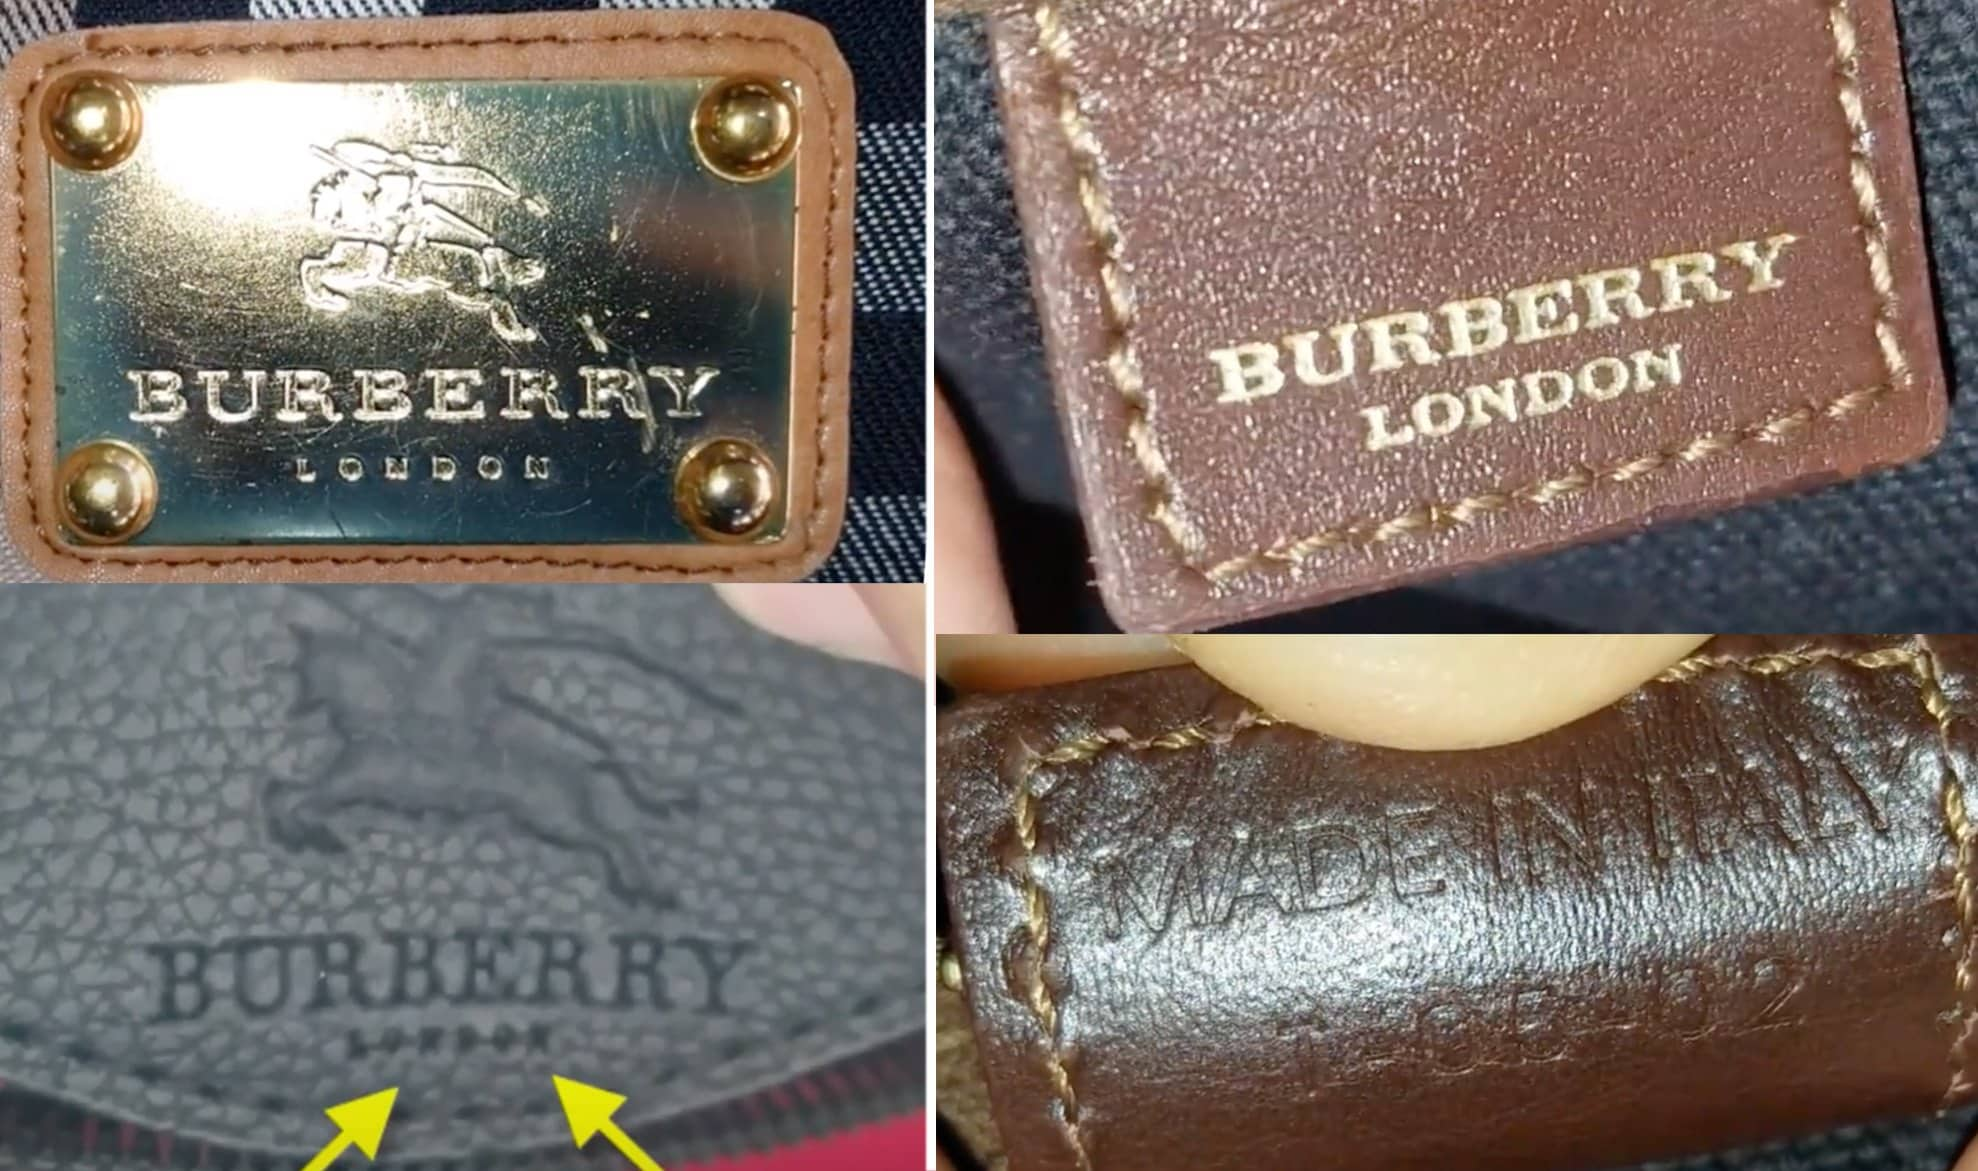 Screenshots from Voice of People Today YouTube channel show that fake Burberry bags (left) have inferior quality stamps, while original Burberry bags (right) have neat stamps and seamless calligraphy